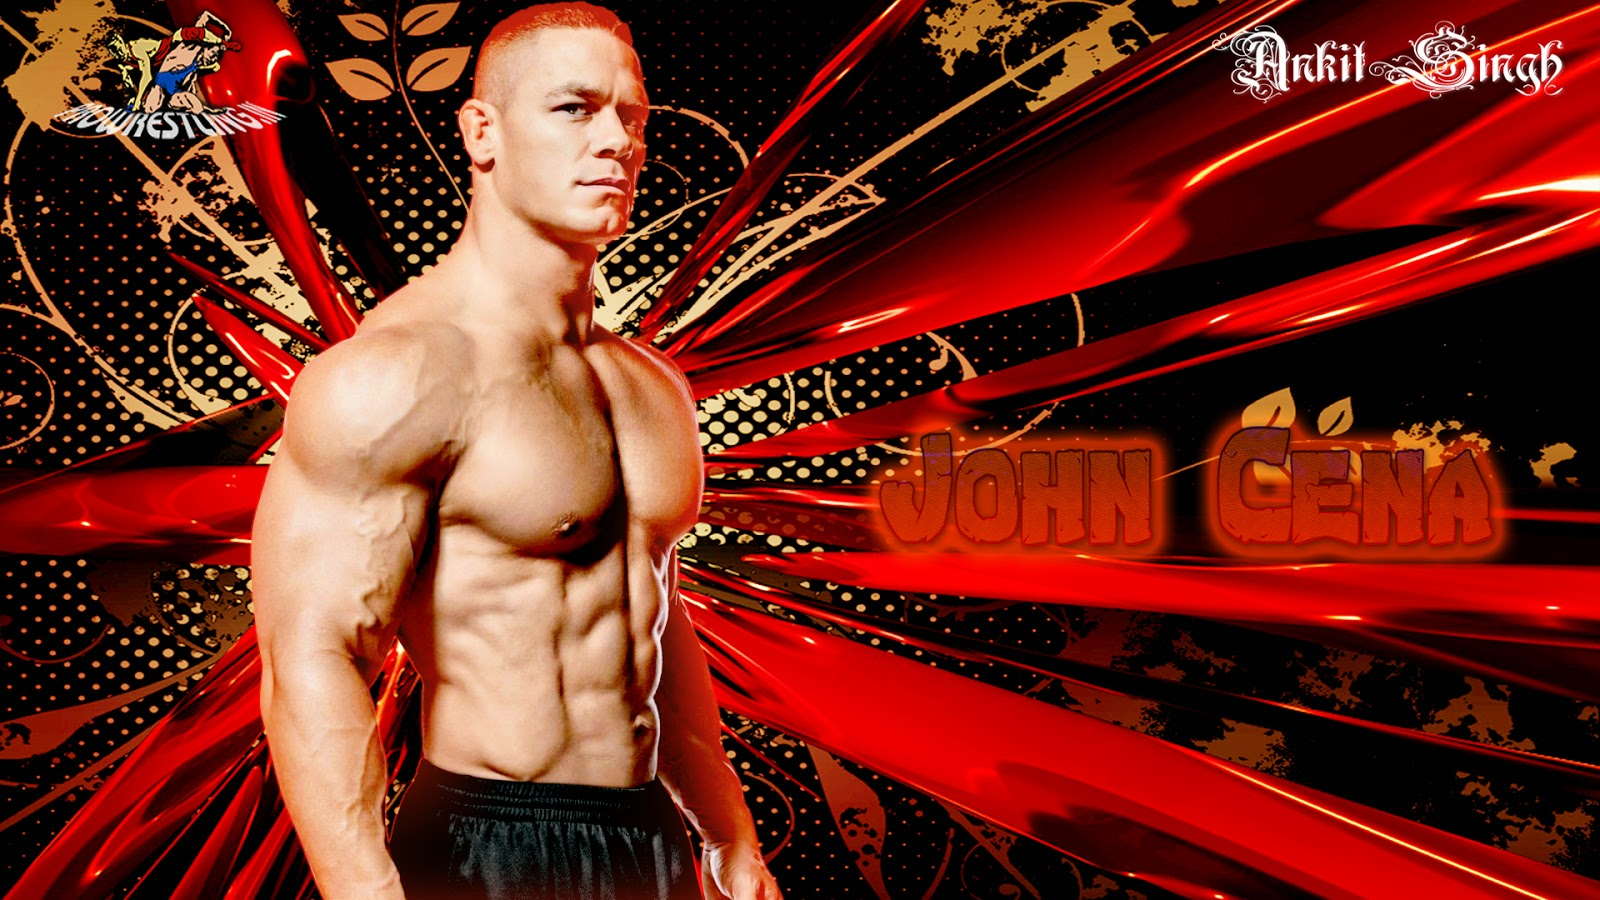 Wallpaper Download John Cena HD Wallpaper 2014 Created By Ankit 1600x900